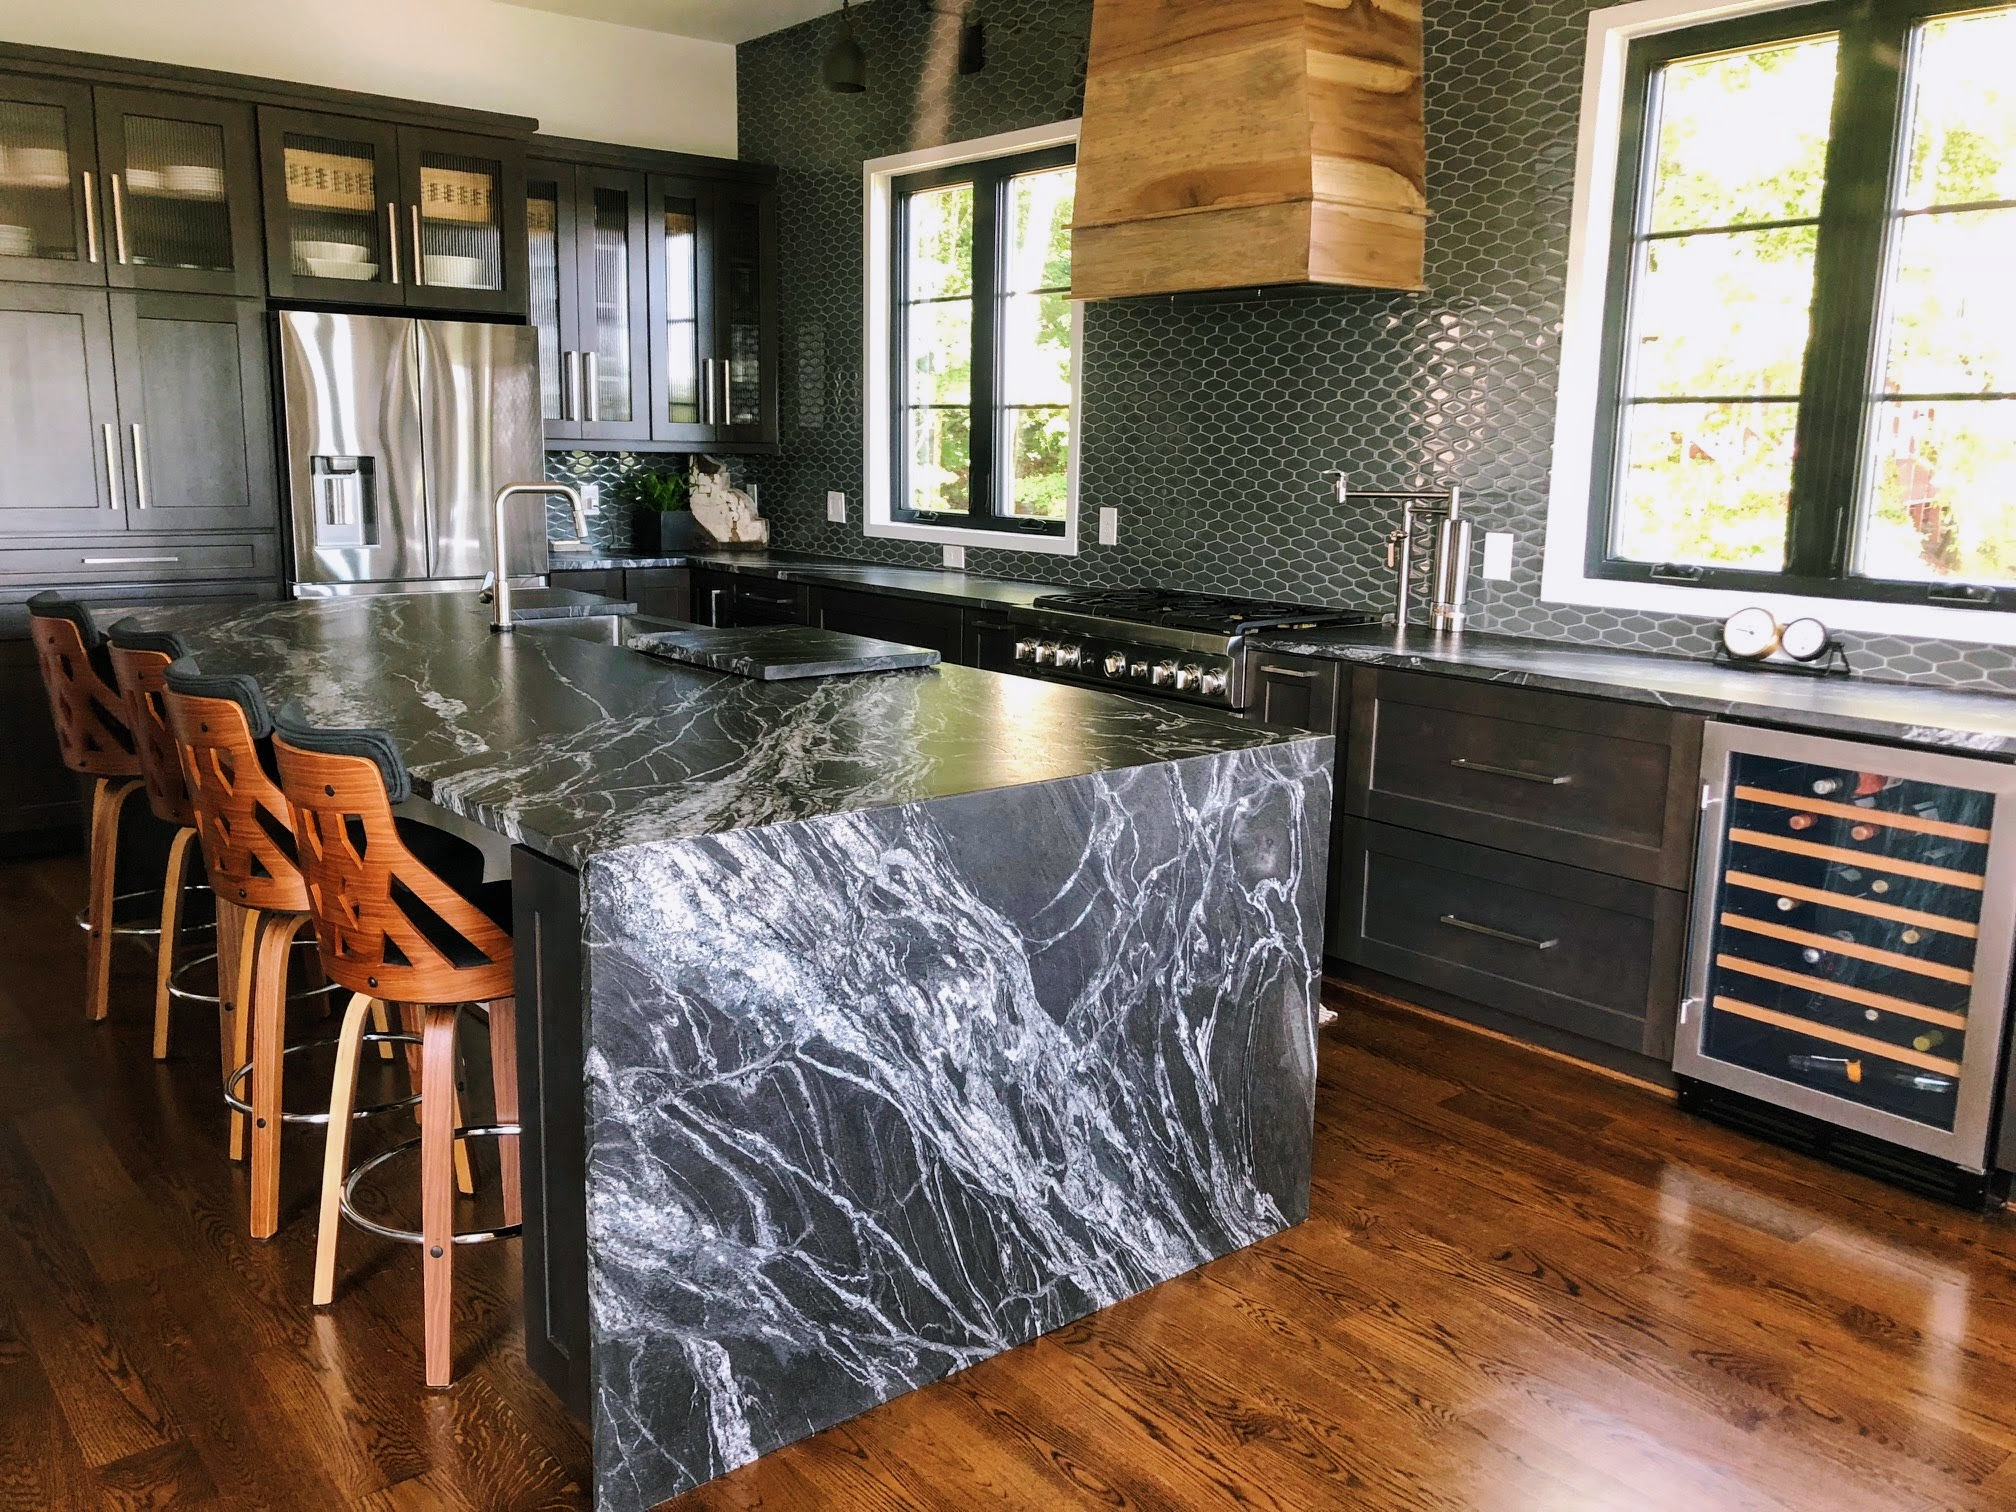 Black Forest Granite Kitchen Tega Cay Legacy Countertops Charlotte Nc